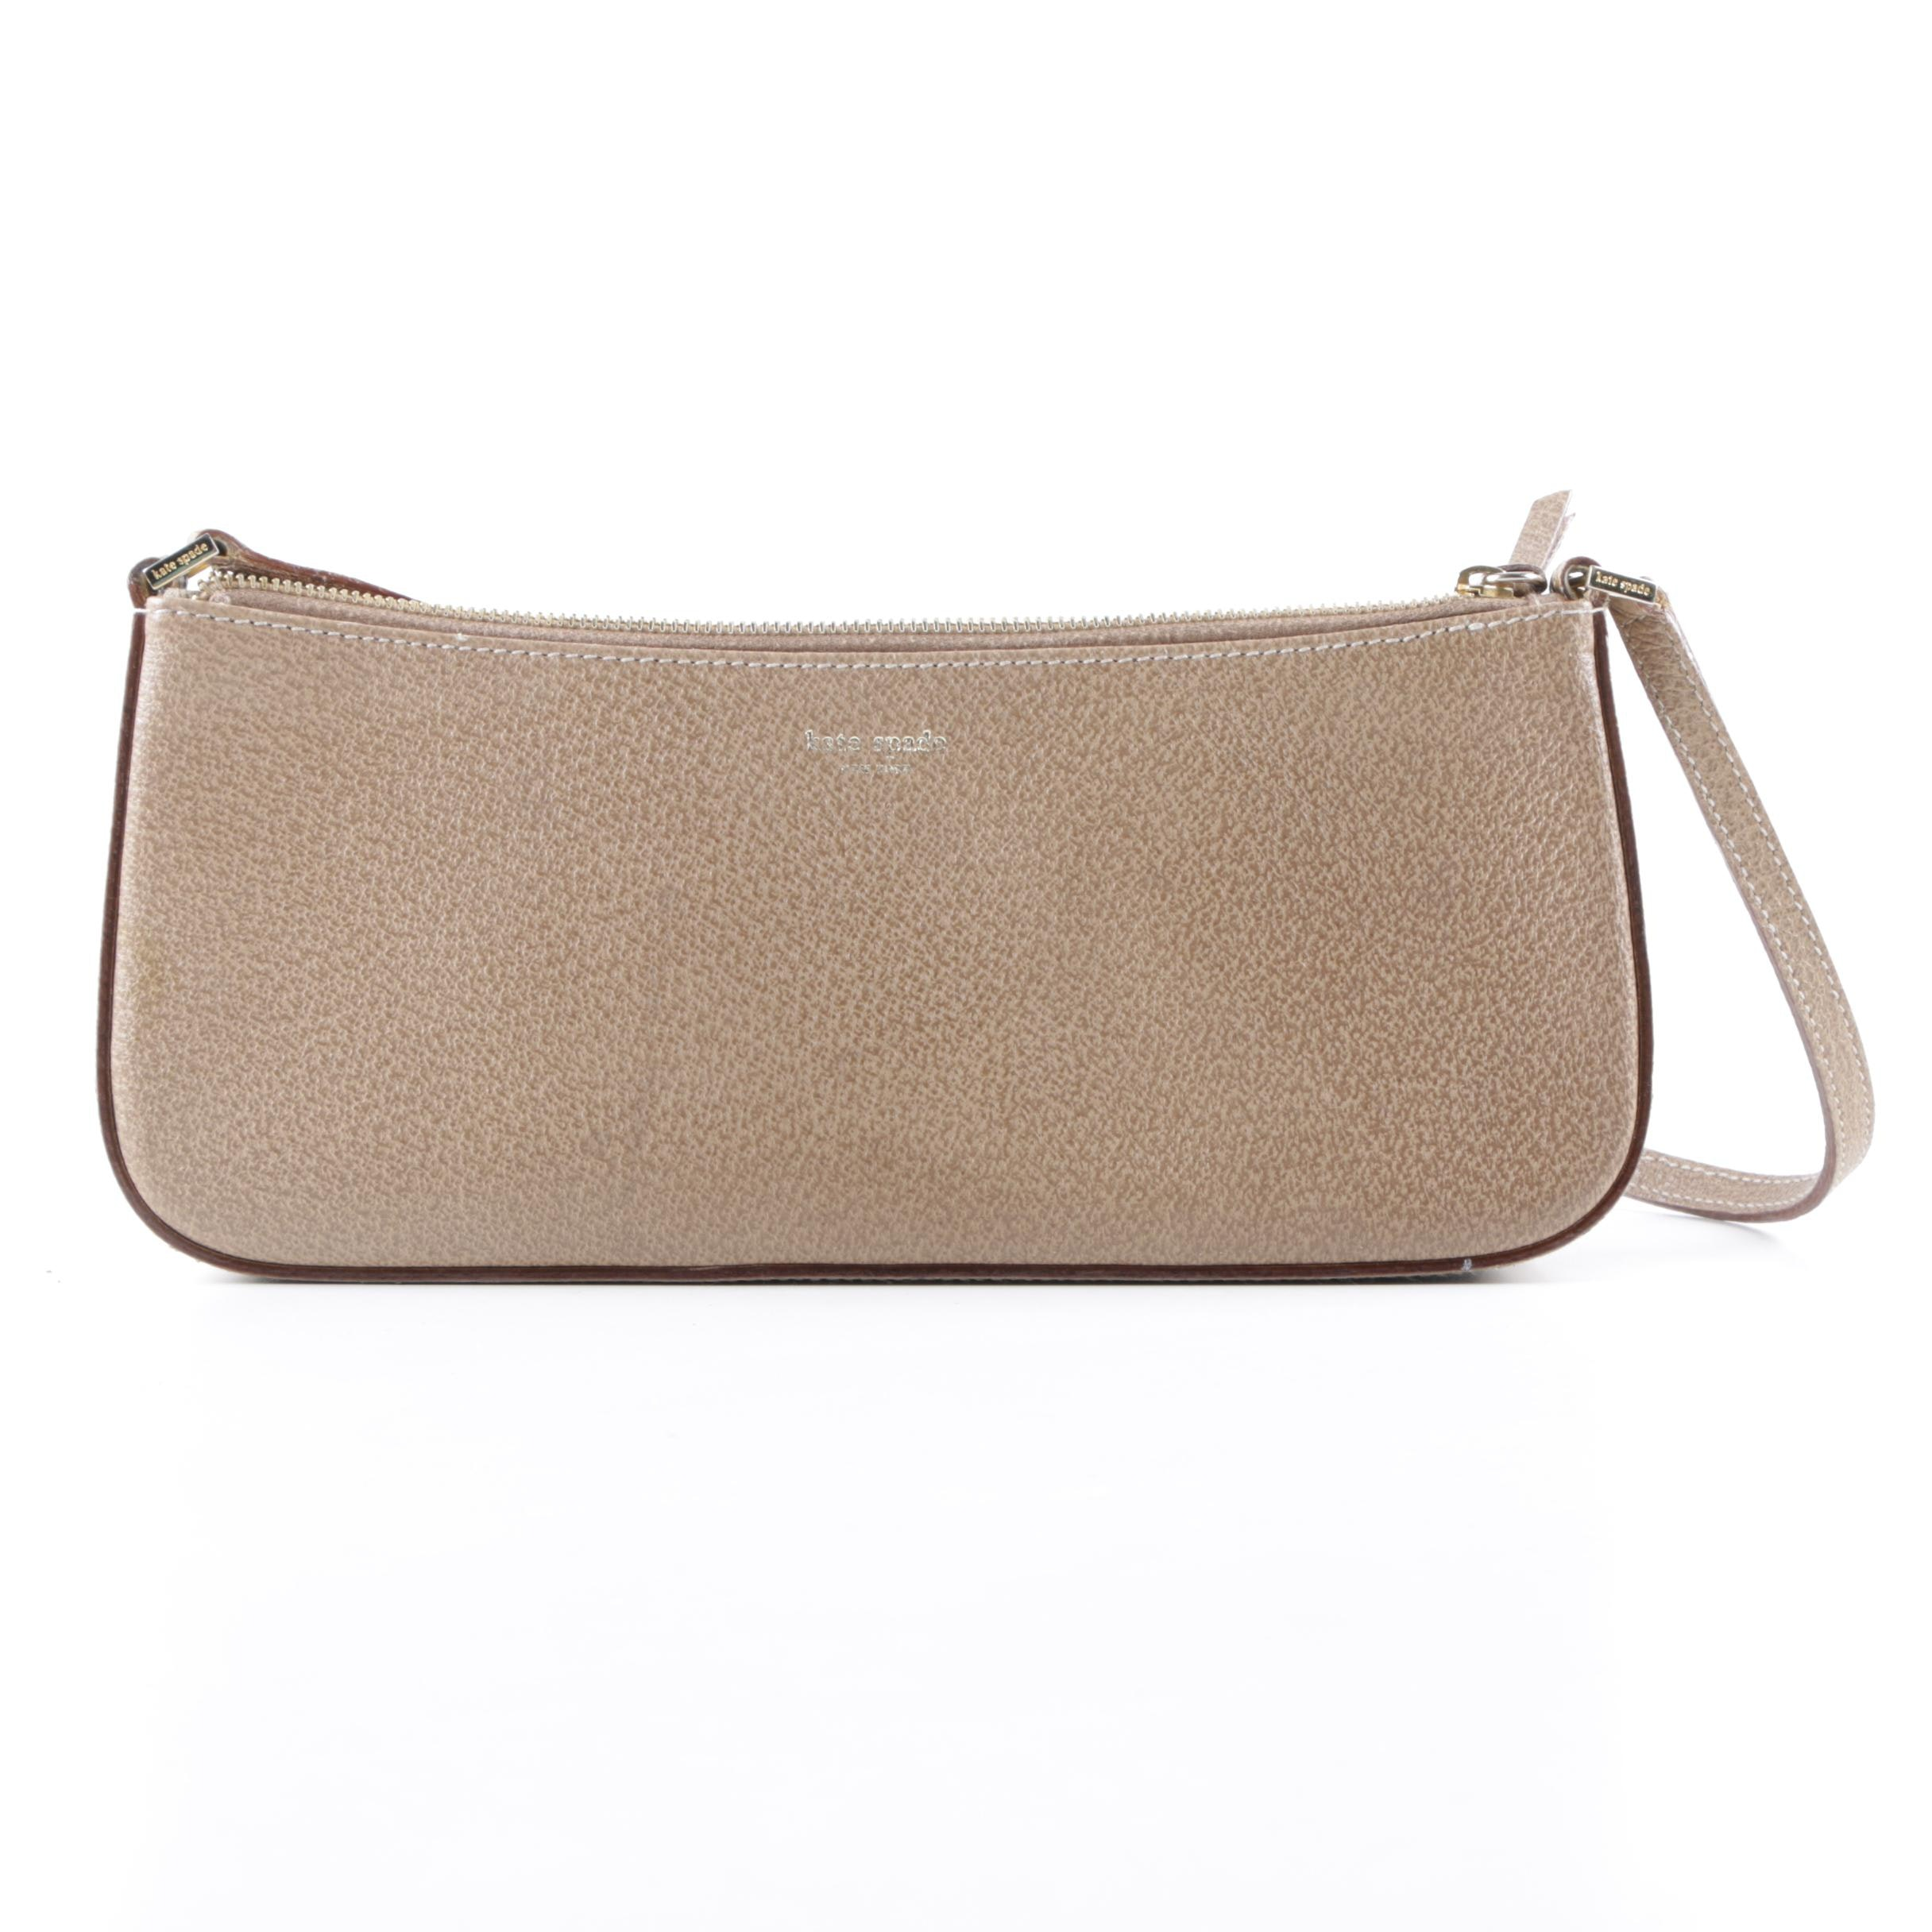 Kate Spade New York Tan Leather Baguette